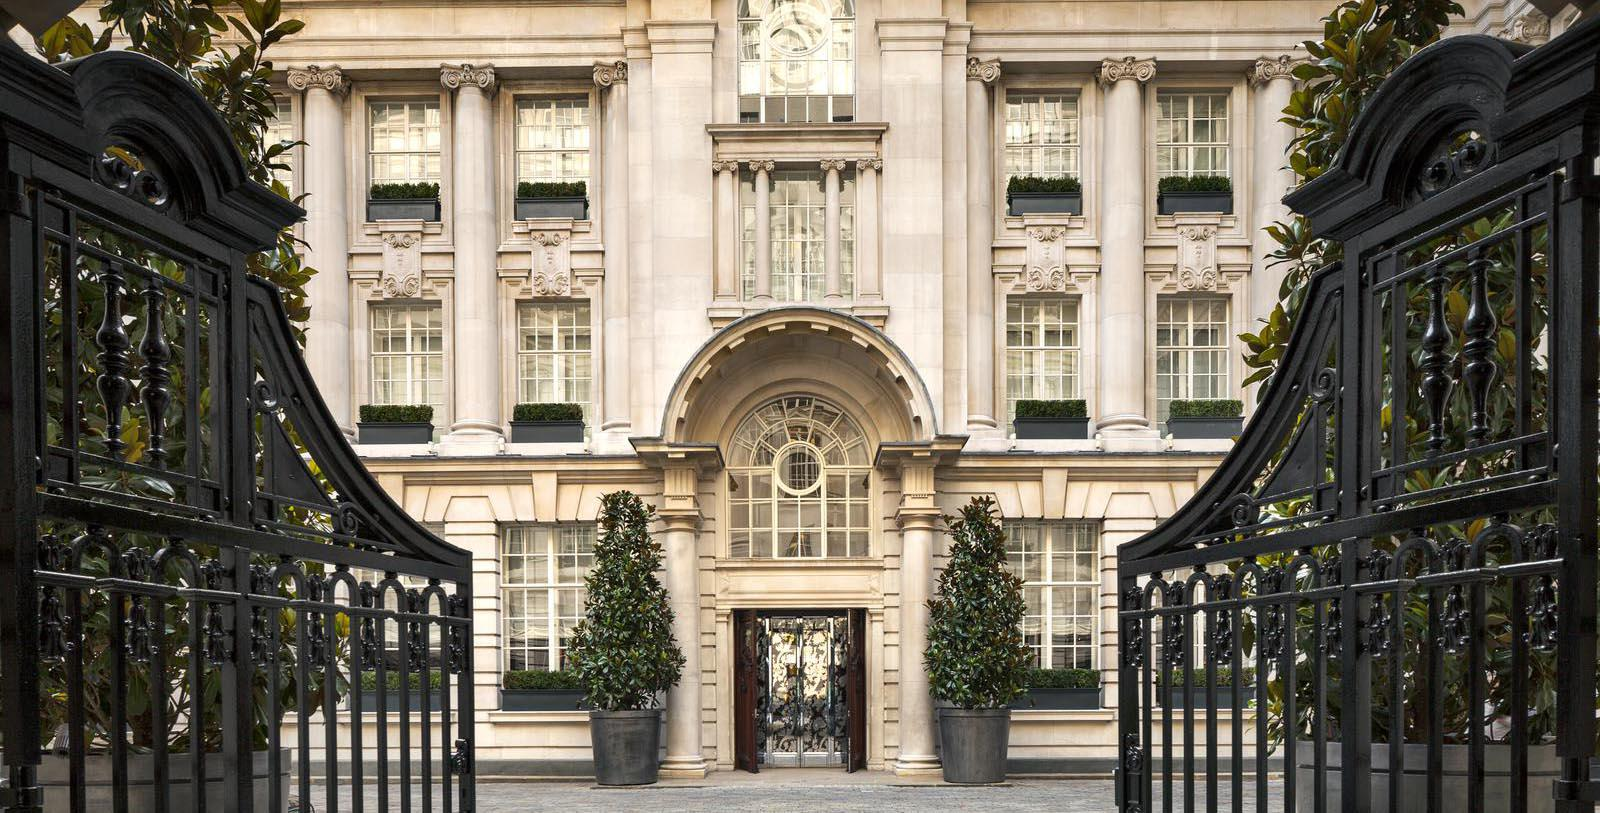 Image of Hotel Exterior Rosewood London, 1914, Member of Historic Hotels Worldwide, in London, England, United Kingdom, Special Offers, Discounted Rates, Families, Romantic Escape, Honeymoons, Anniversaries, Reunions